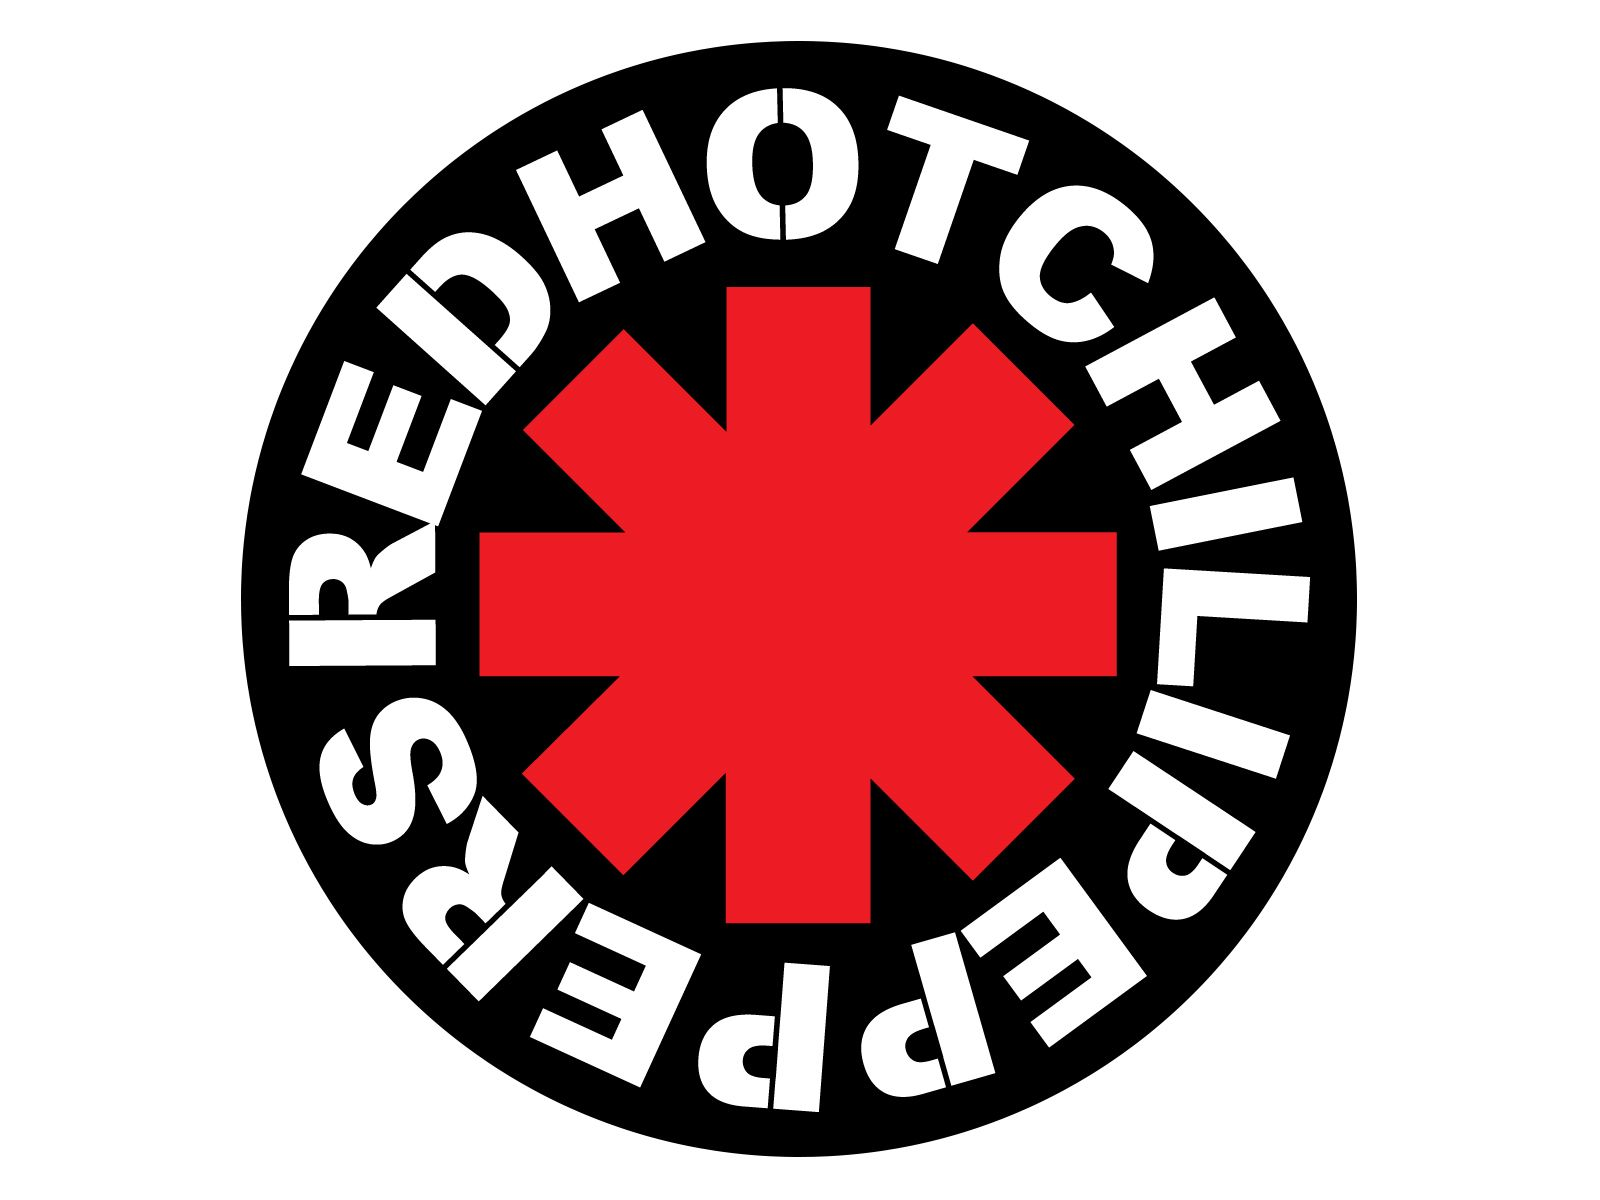 Vinyl Sticker Decal Red Hot Chili Peppers full colour band logo